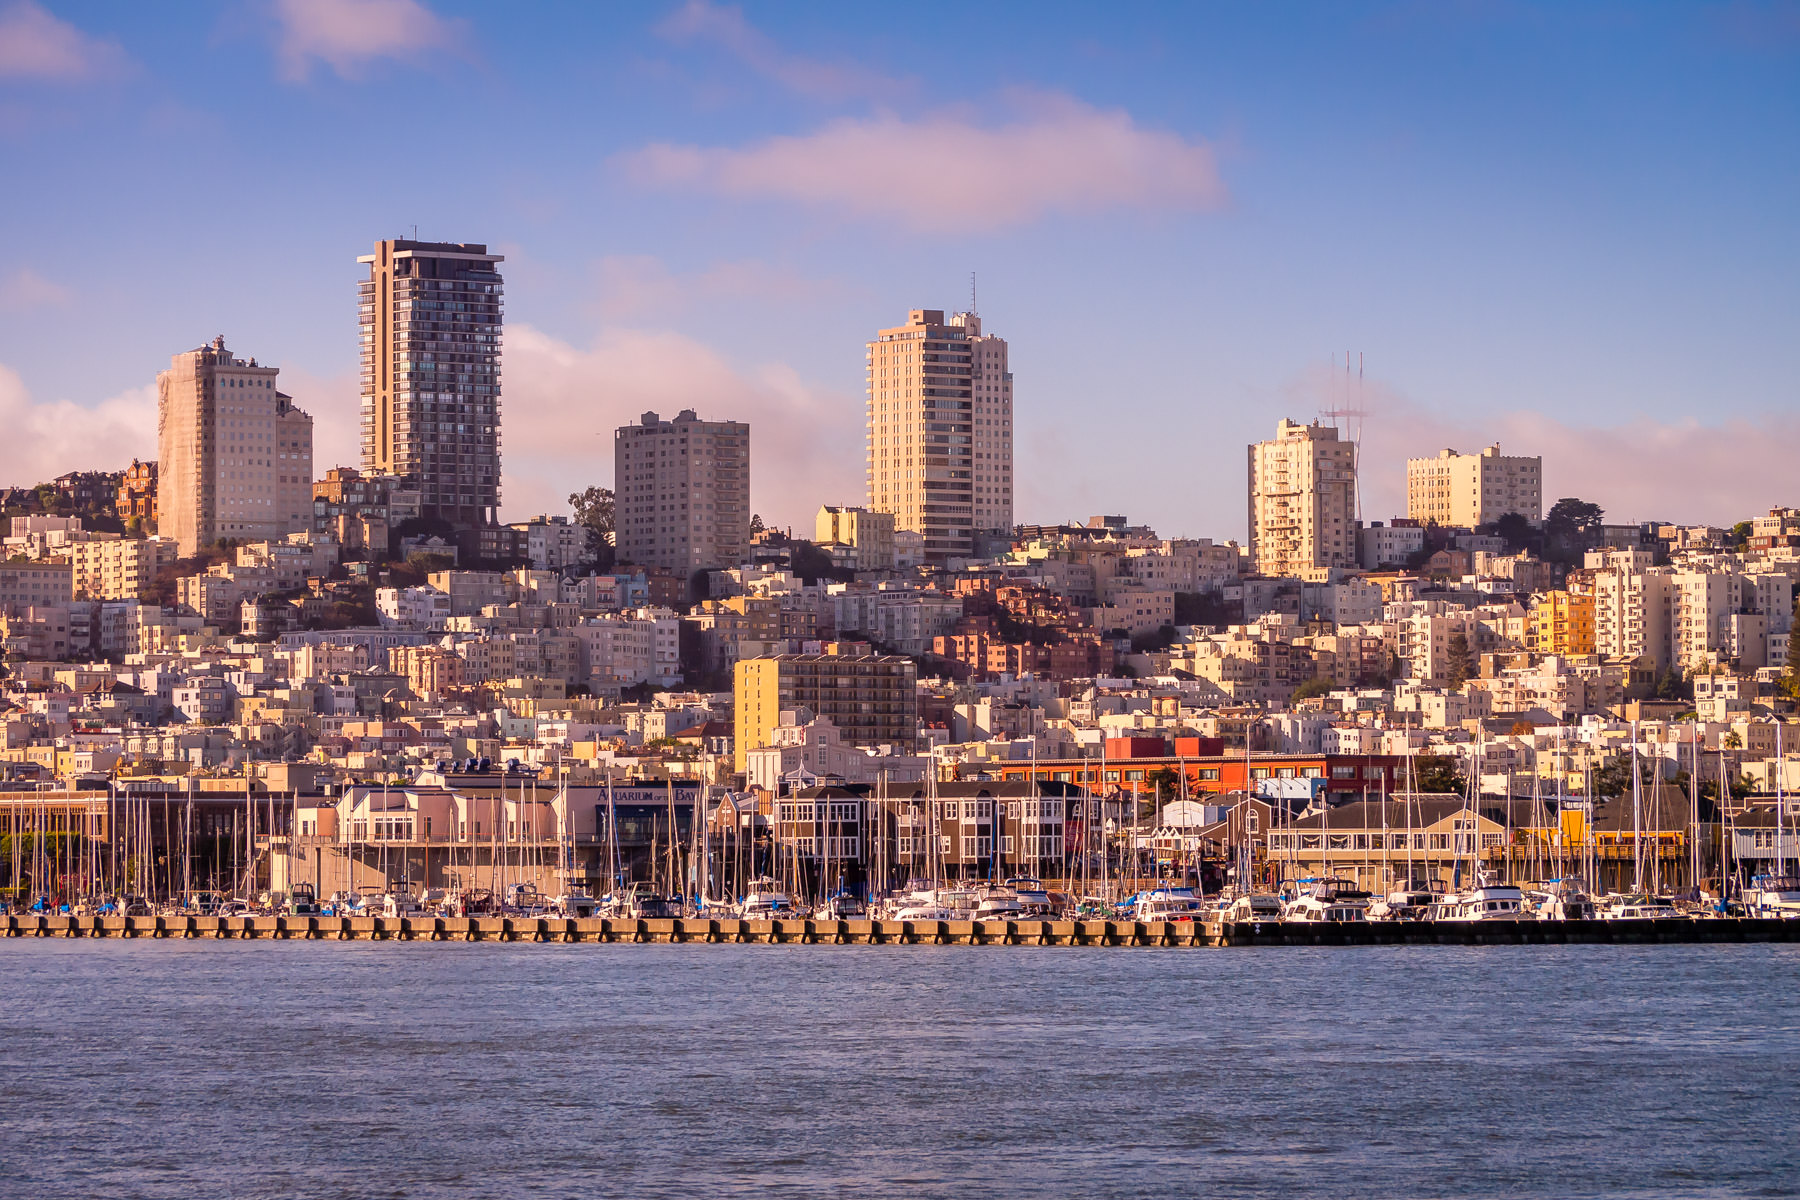 San Francisco's Russian Hill rises above the waterfront as the sun rises on the city.